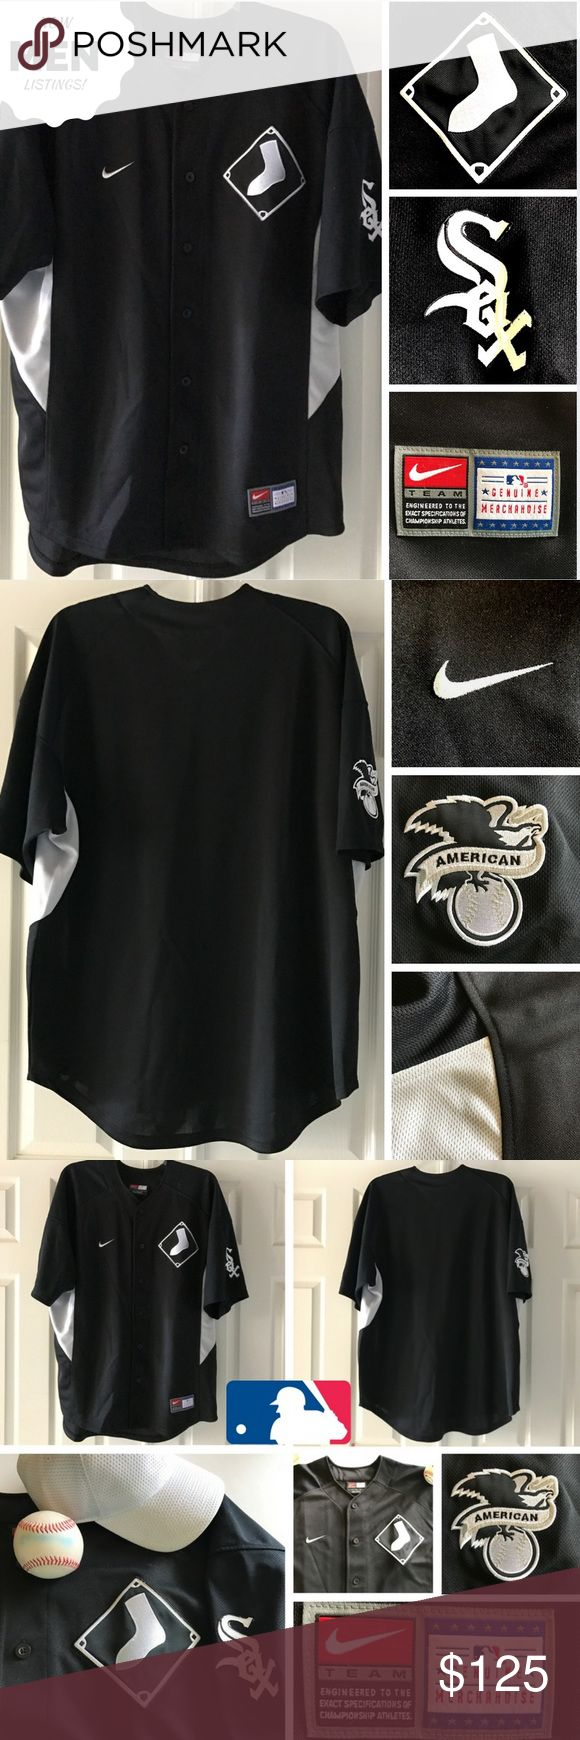 """🆕 White Sox Jersey Official MLB Merchandise, Nike Hit it out of the park with this Chicago White Sox jersey! Official MLB merchandise by Nike.   * Size Lg (approx 27"""" flat, armpit to armpit 